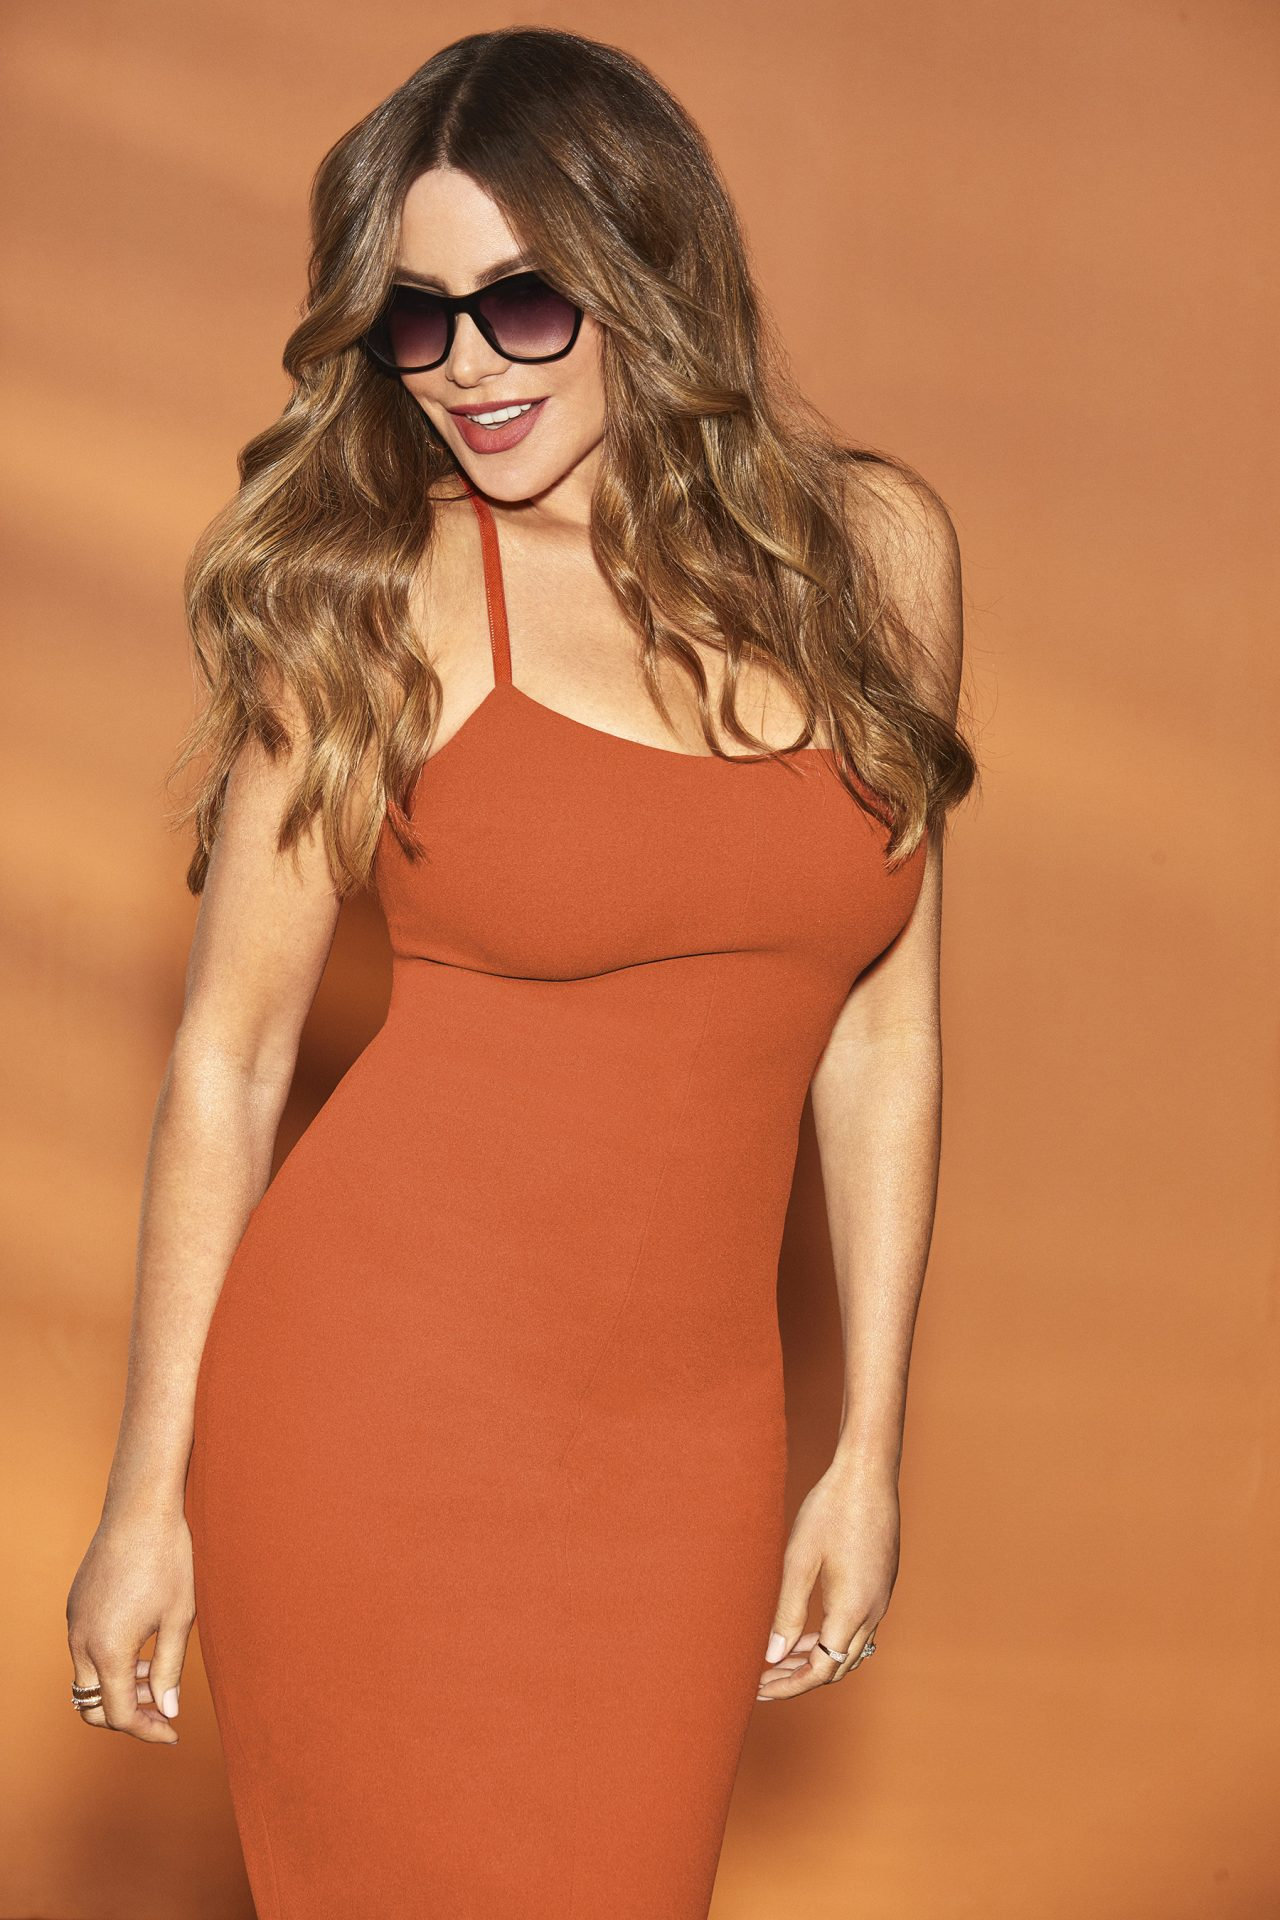 Sofia Vergara x Foster Grant New Eyewear Collection